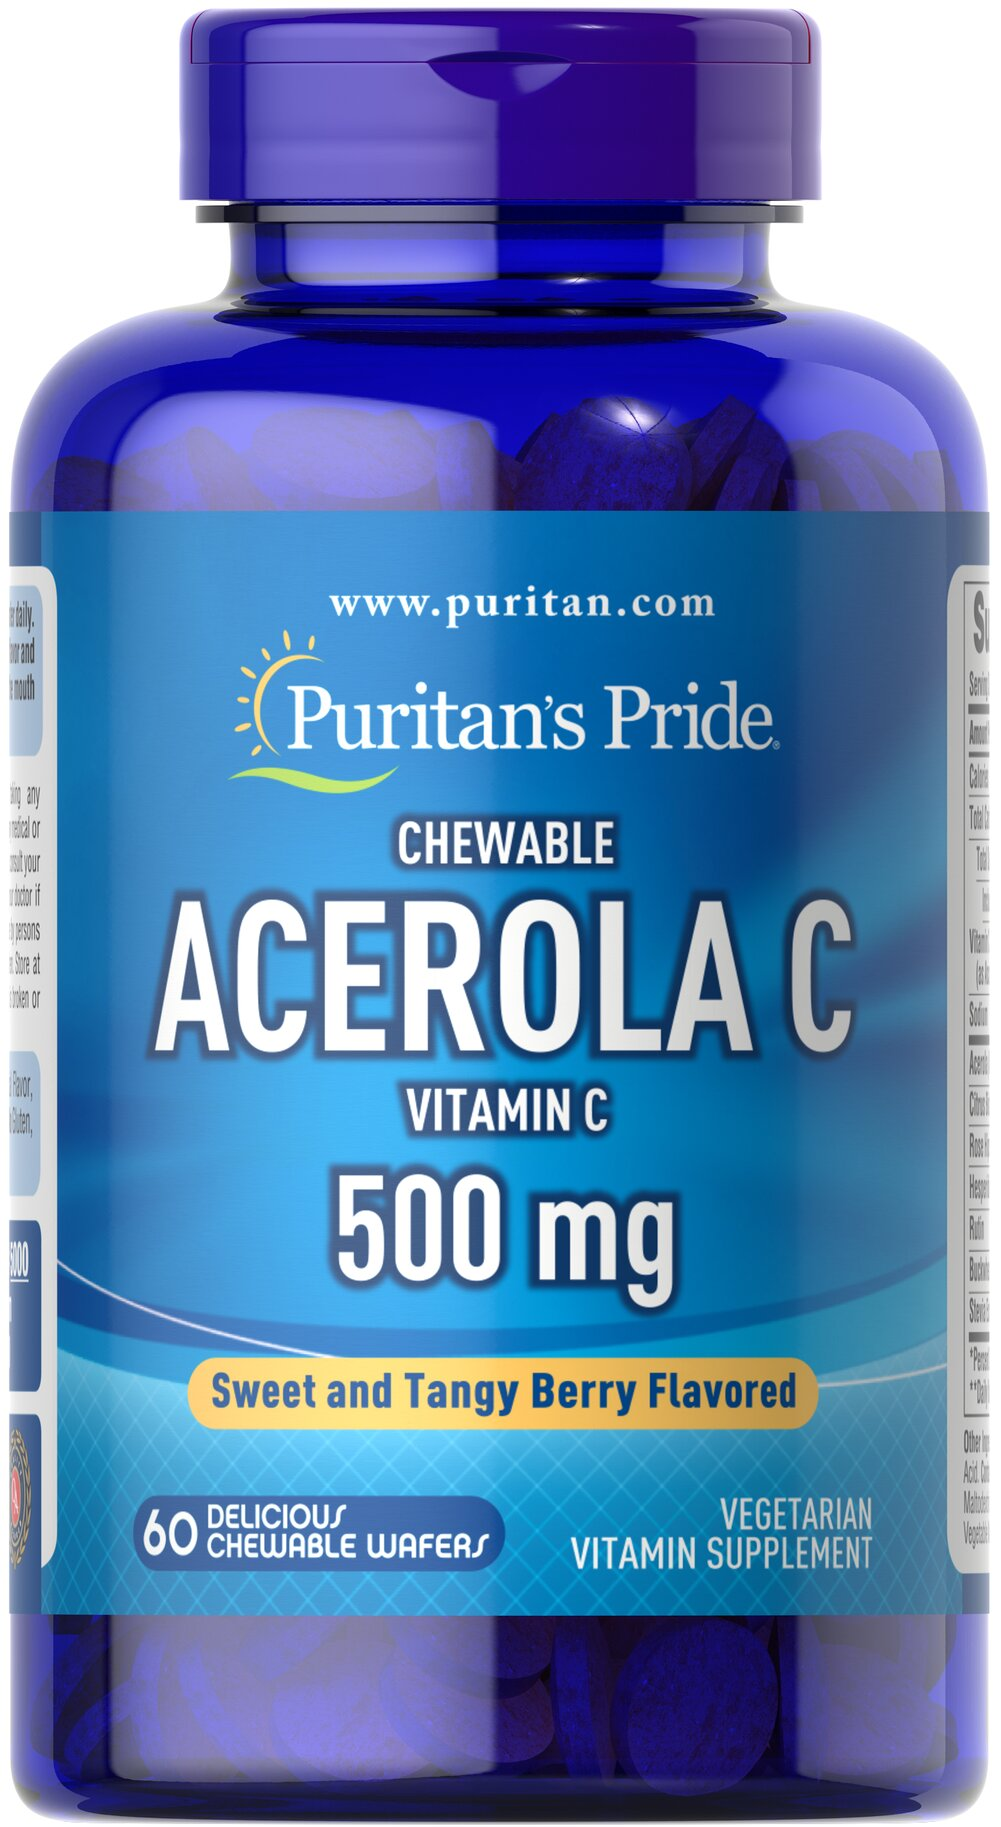 Chewable Acerola C 500 mg